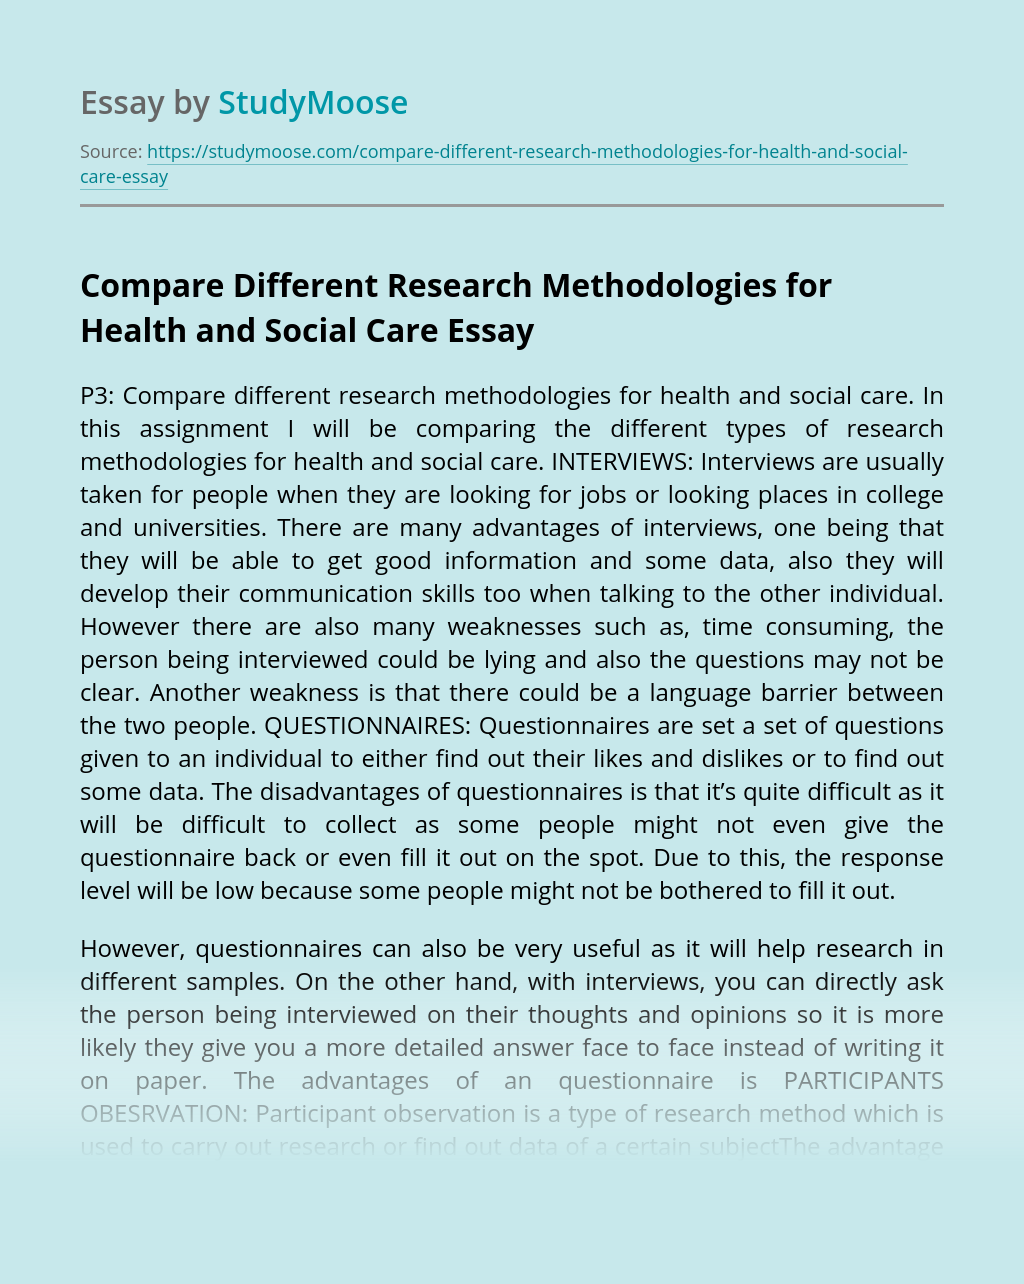 Compare Different Research Methodologies for Health and Social Care